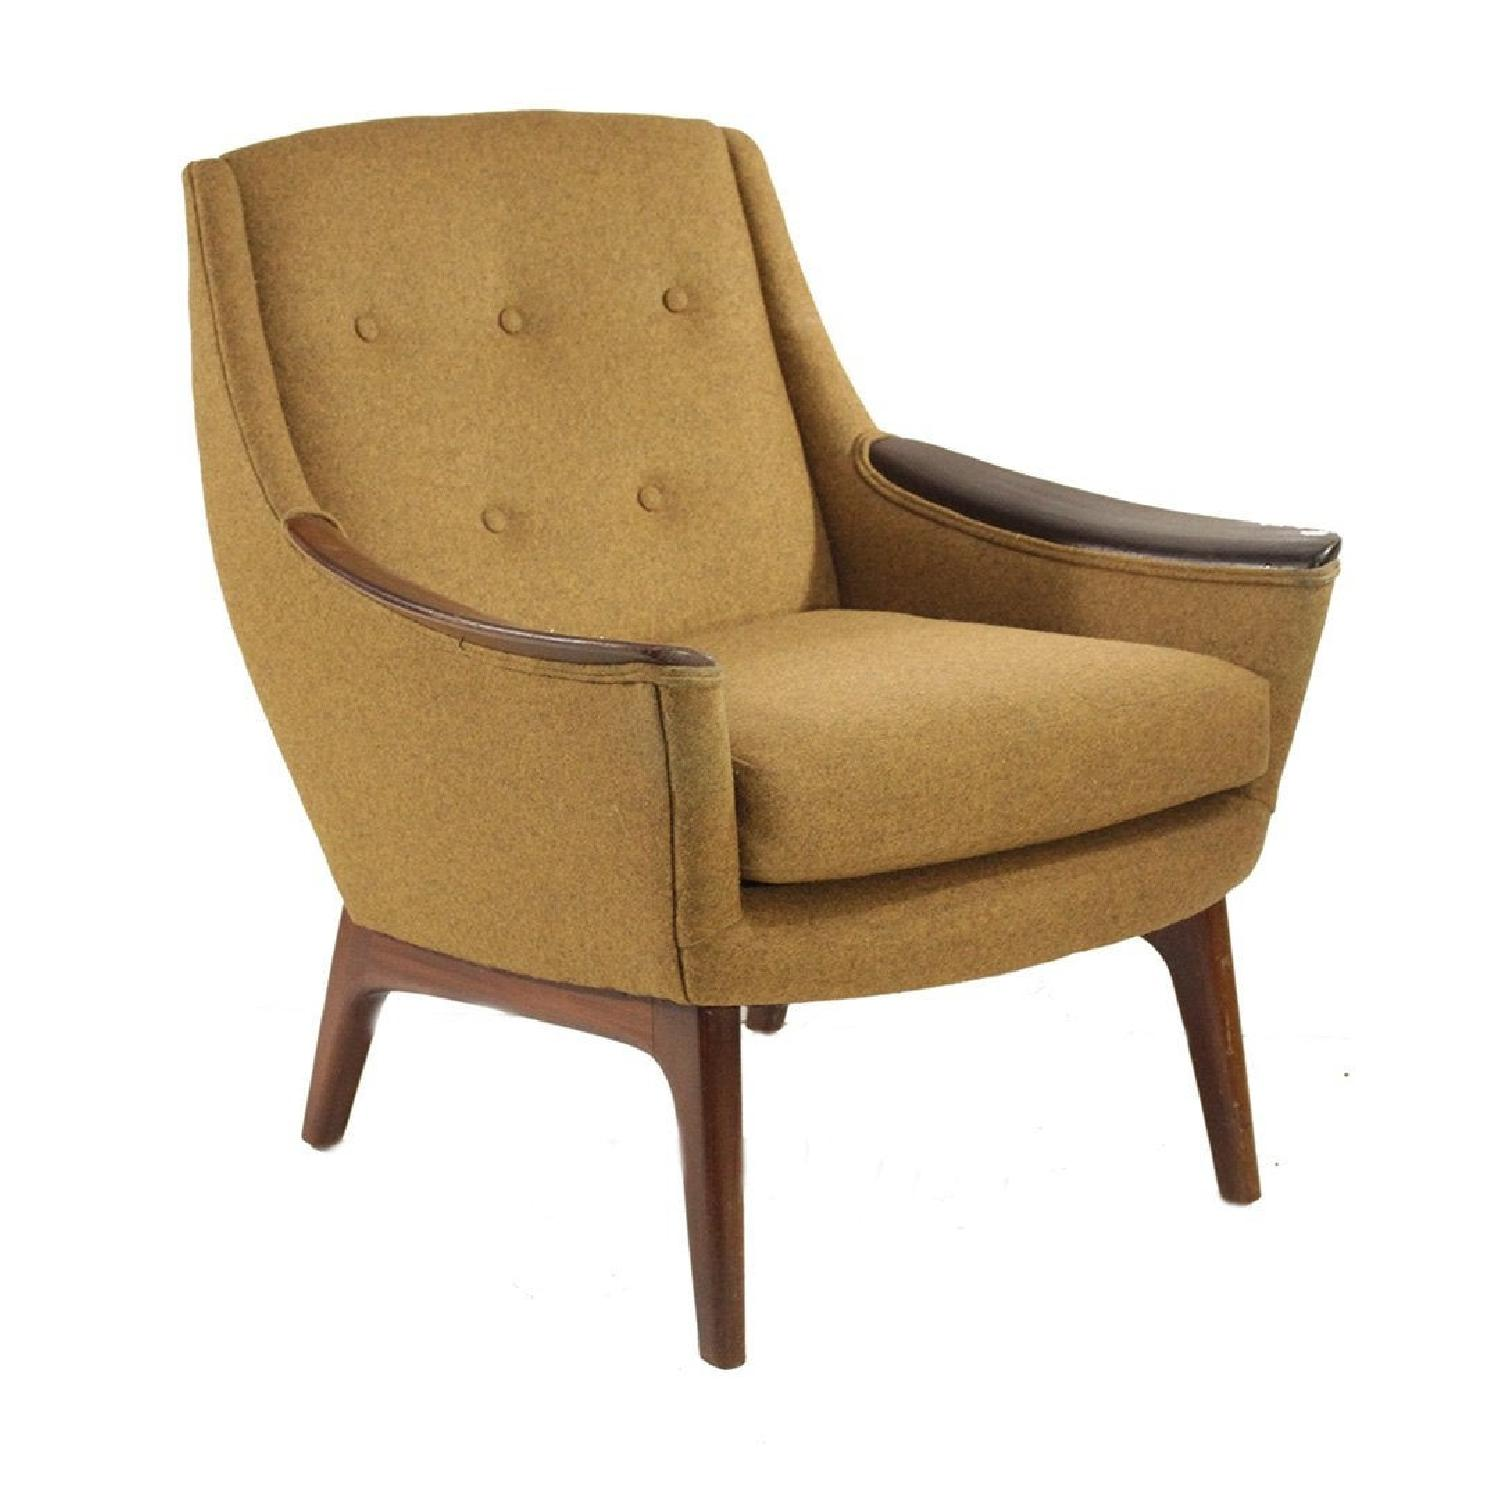 1960s Adrian Pearsall Walnut & Tweed Lounge Chair - image-0